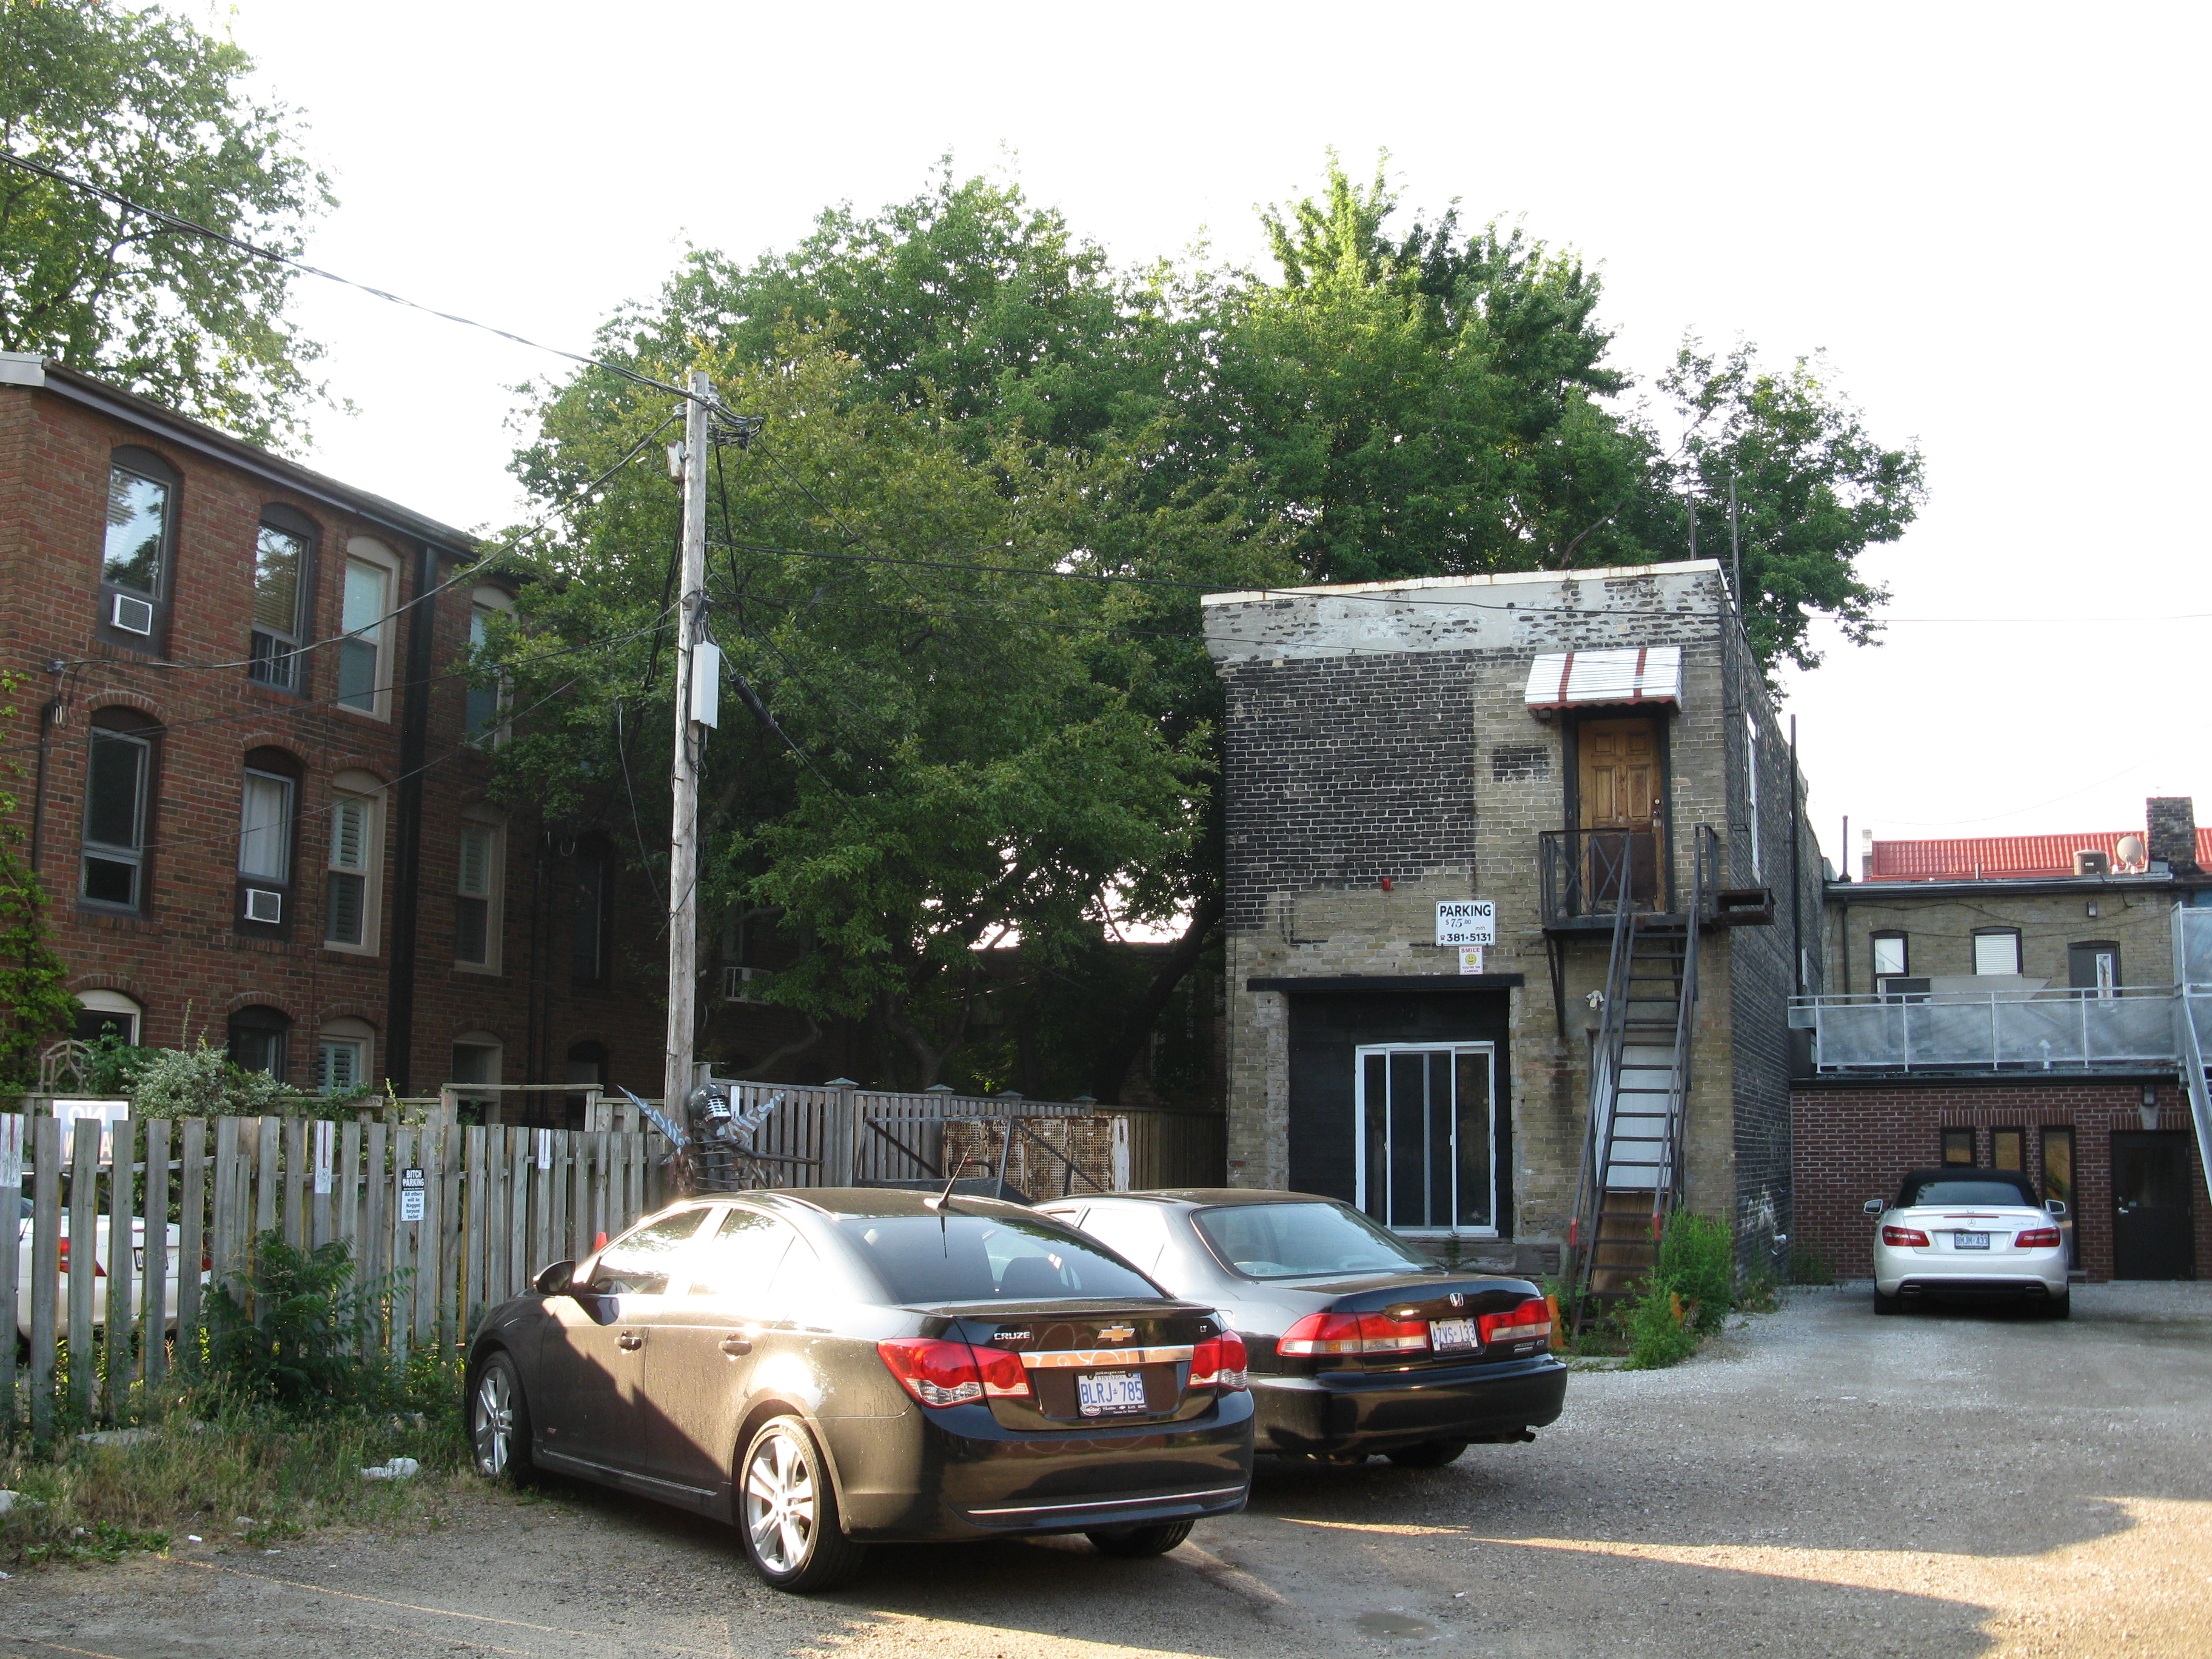 Backyards near Logan and Queen -- 2012 -07 23 -u.jpg, Architecture, Building, Car, Outdoor, HQ Photo